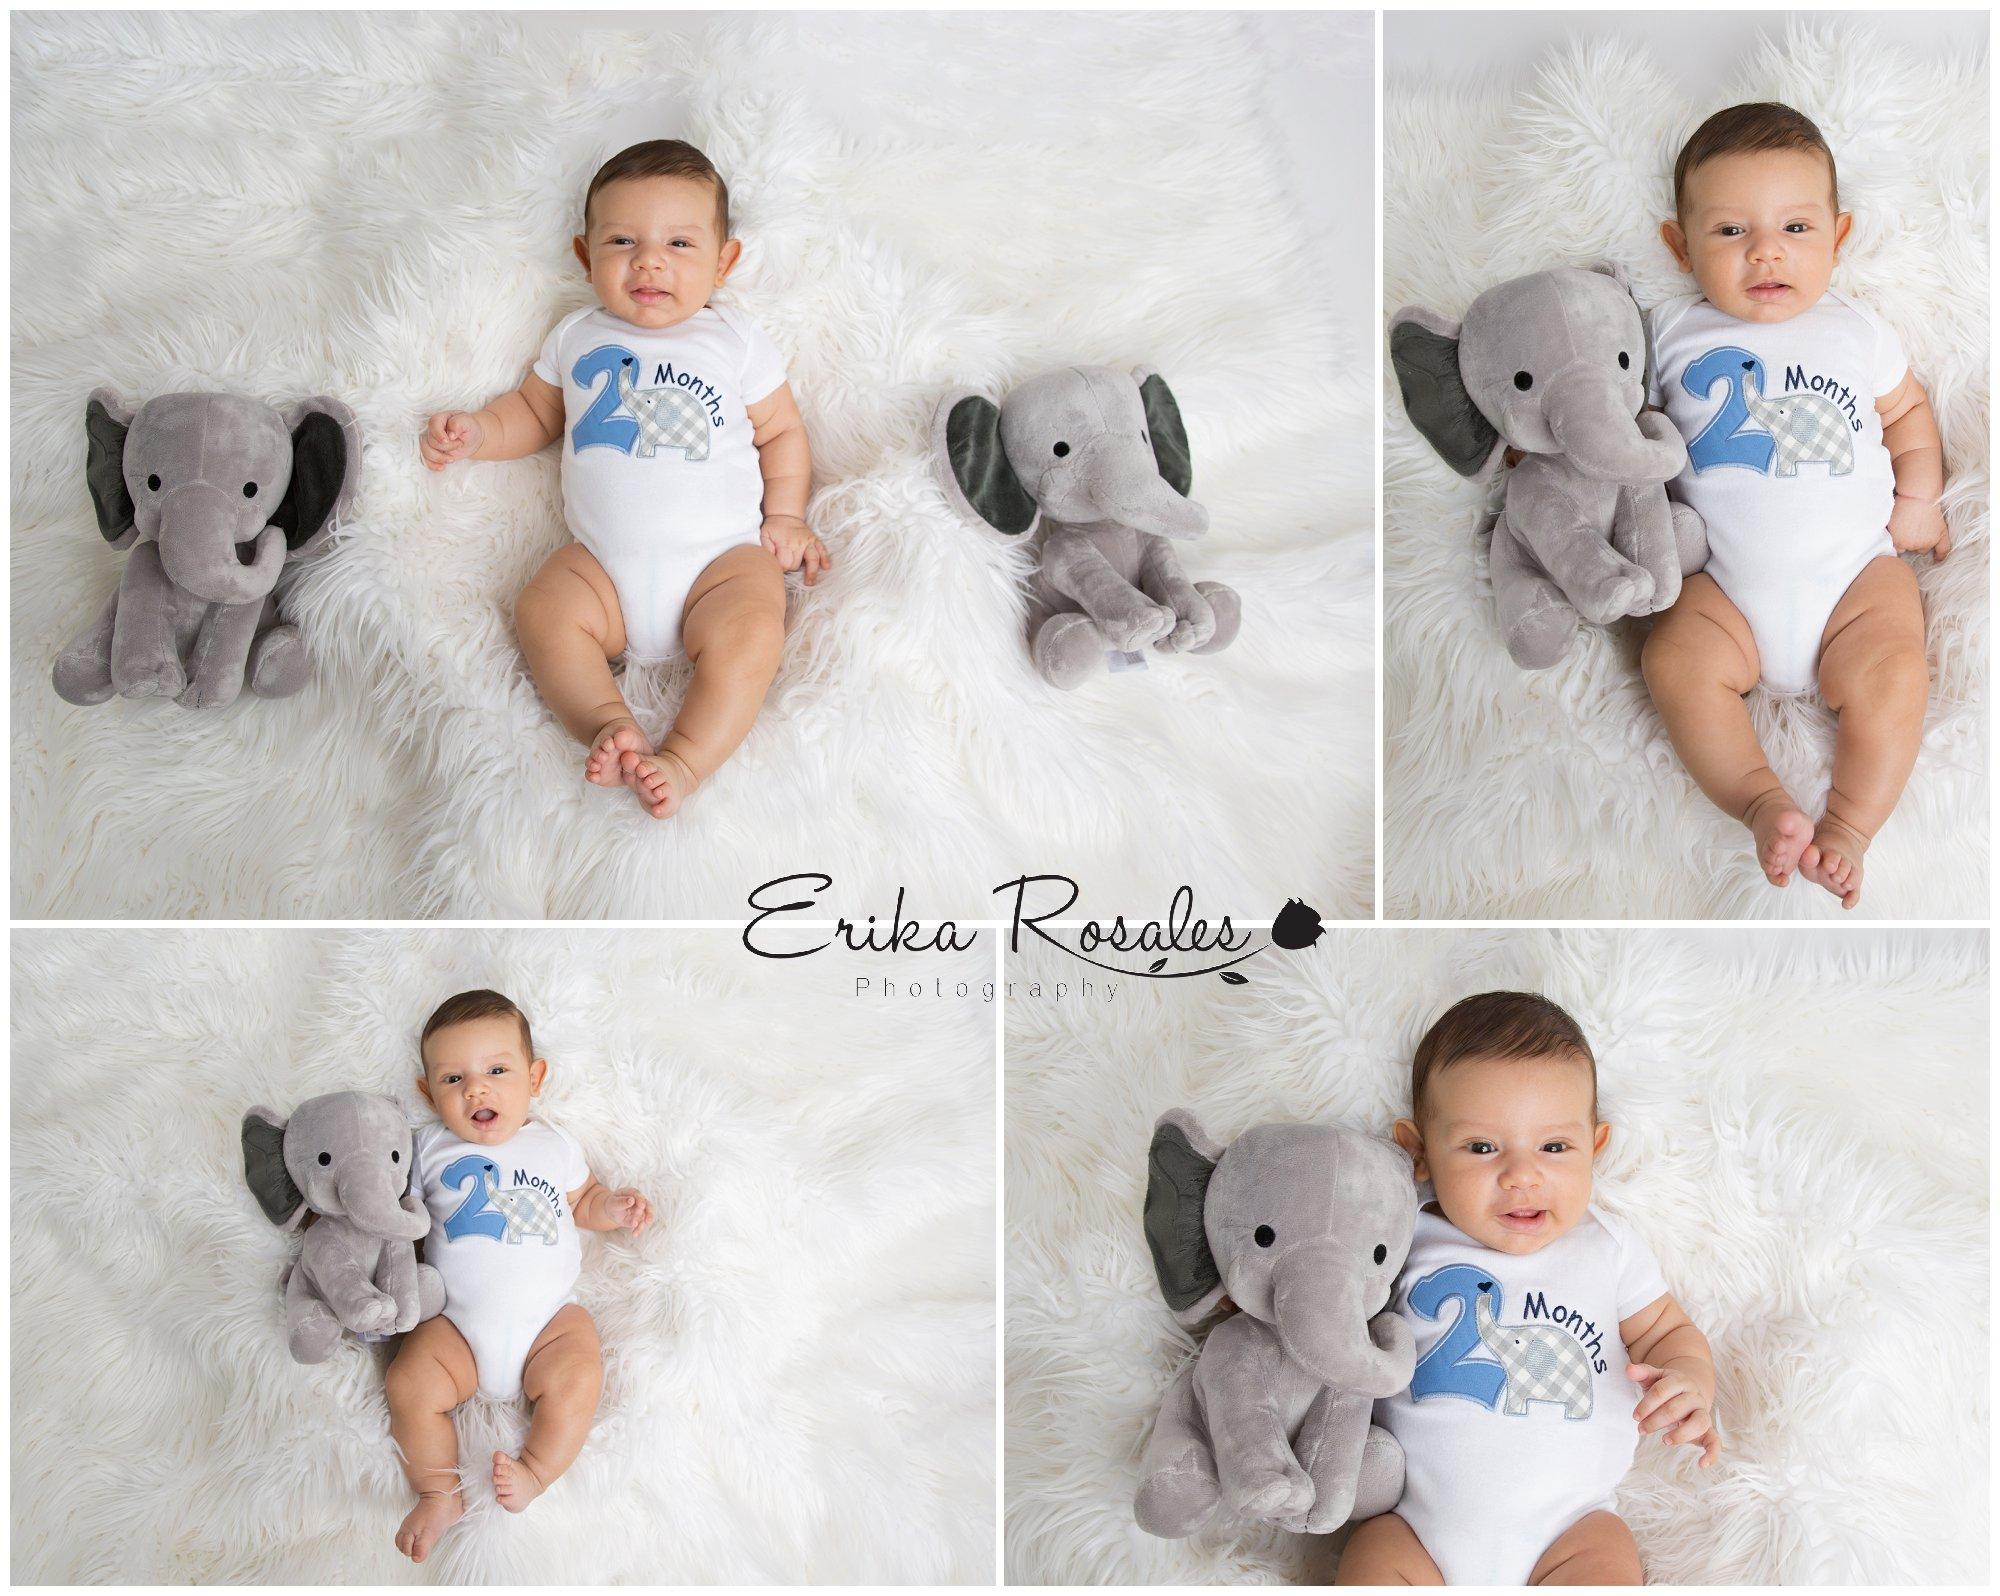 Posted in newborn photo session tagged arthur ave photo studio baby boy newborn baby boy one month old baby girl baby newborn photo session